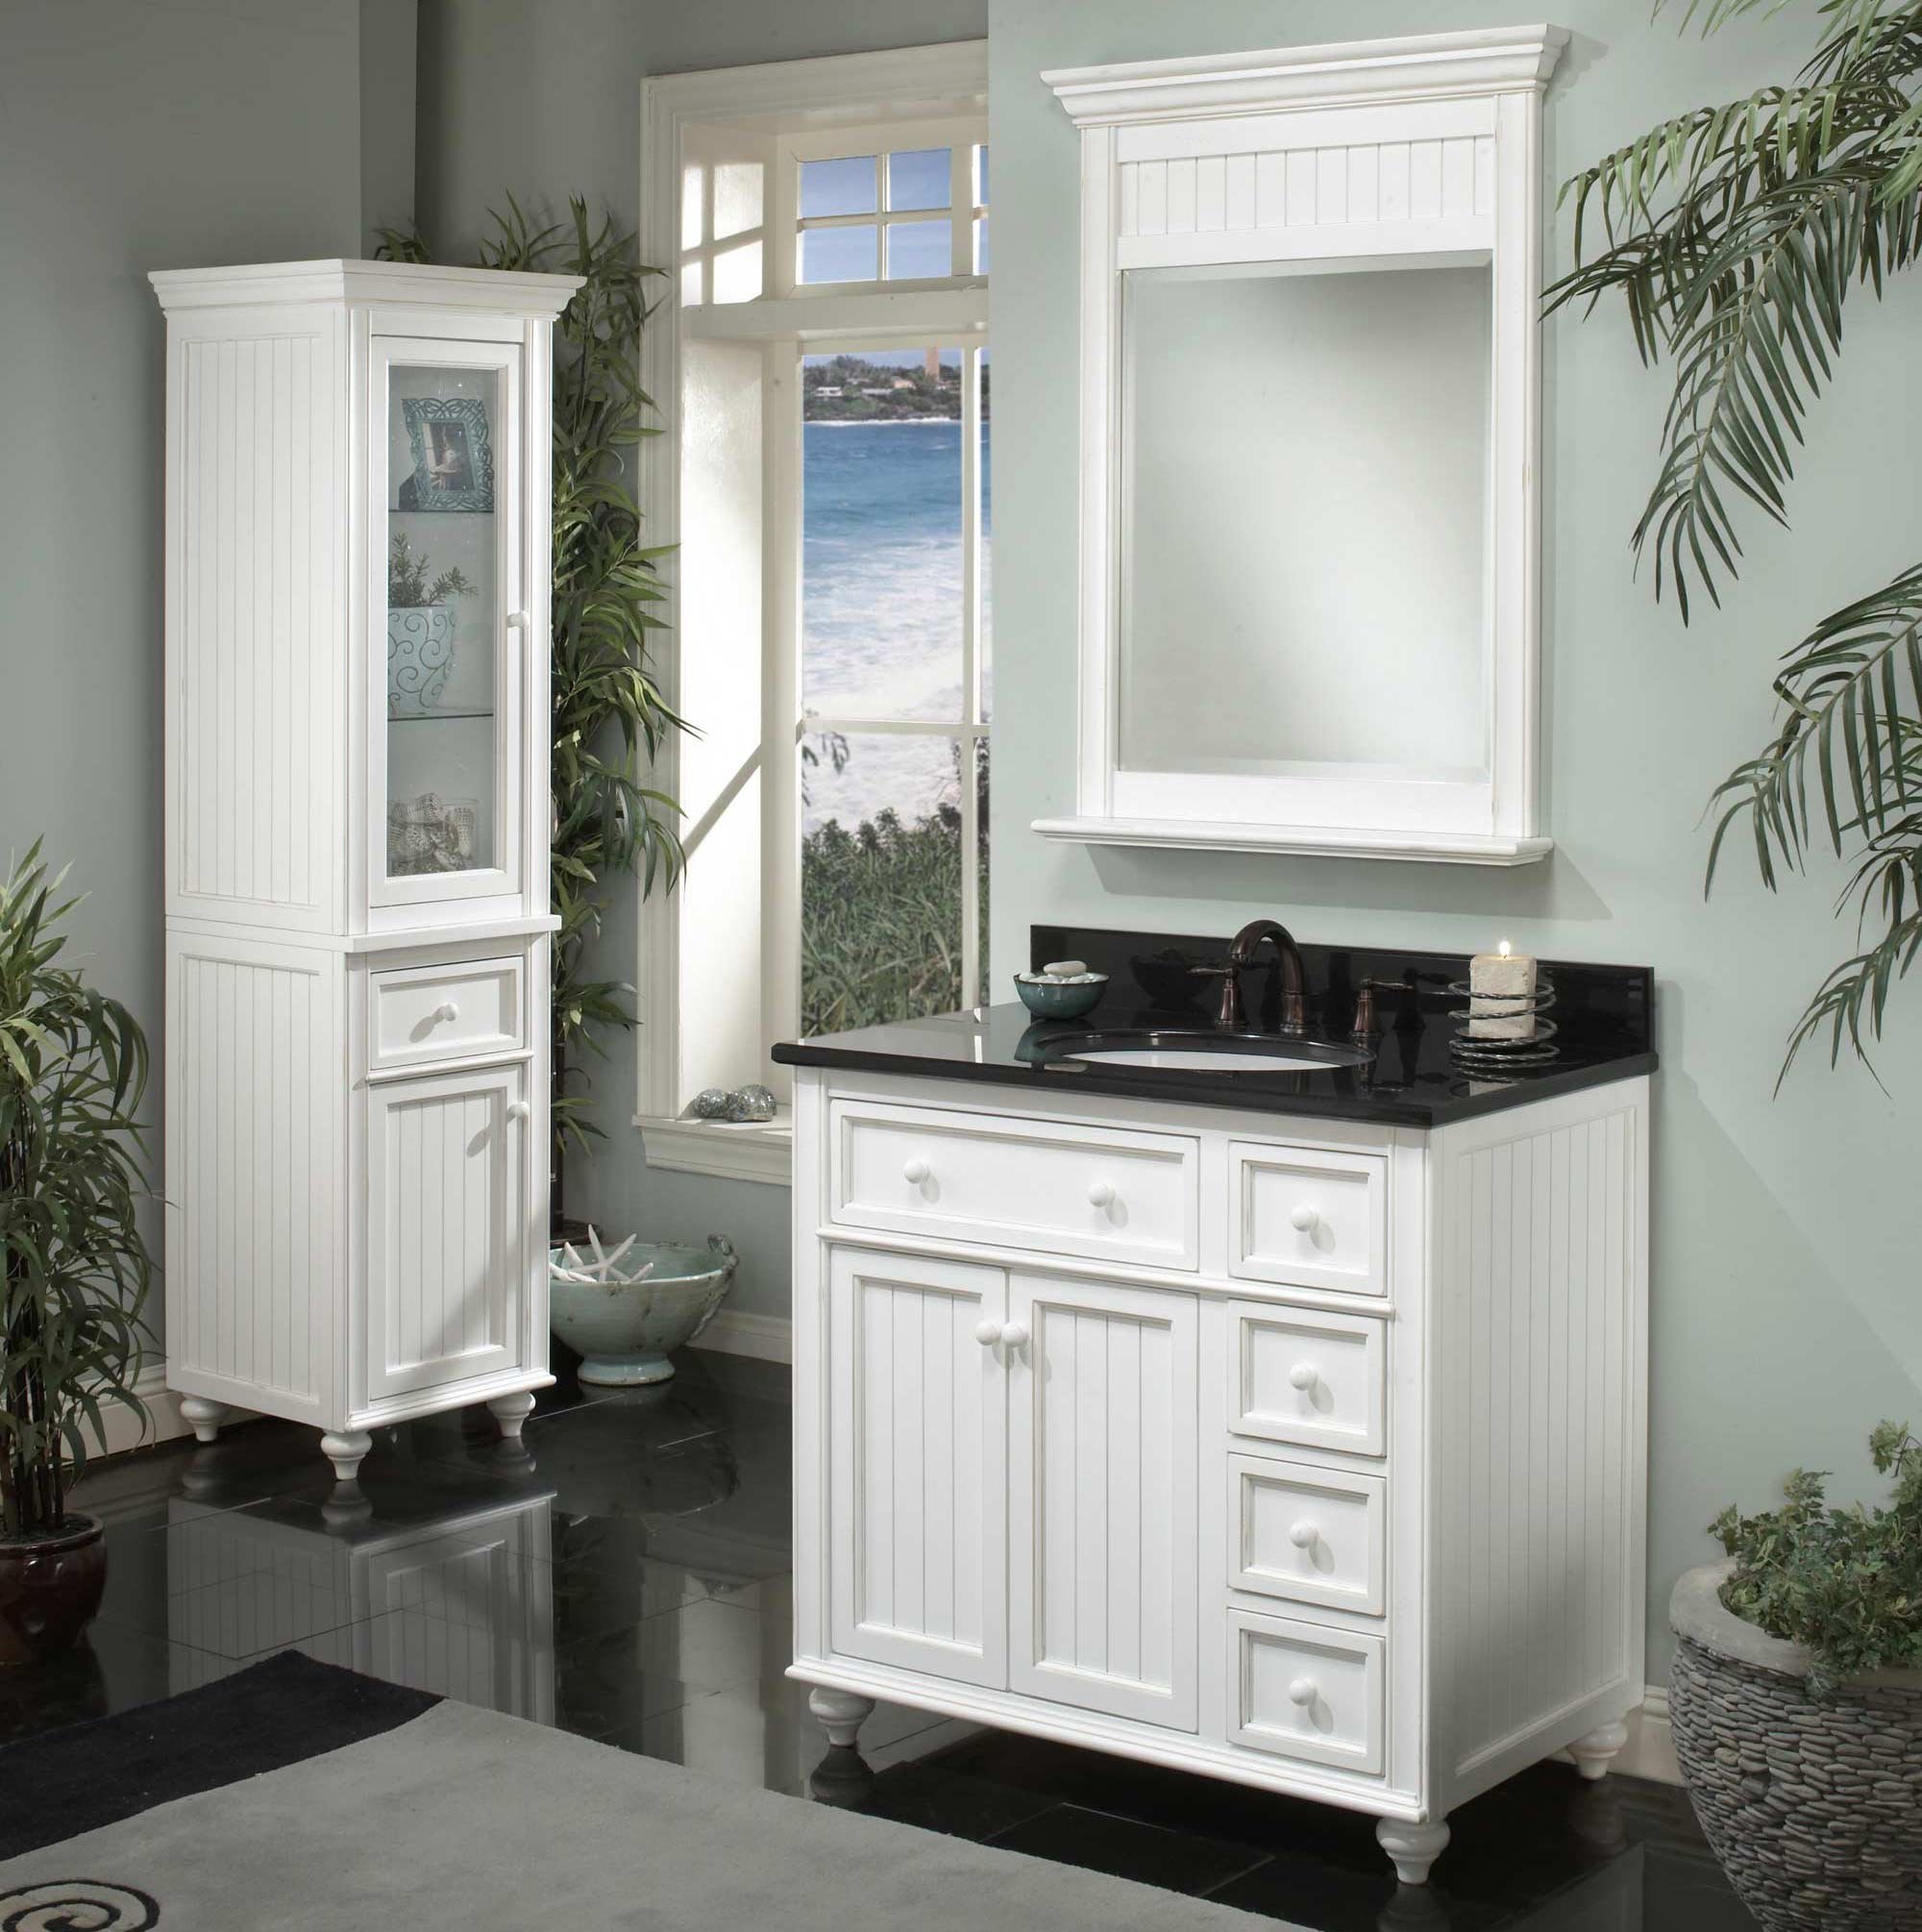 Furniture-bathroom-vanity-style-Beautiful-two-door-and-five-drawers-for-Awesome-white-wooden-bathroom-vanity-style-superb-vanity-bathroom-furniture-design-ideas